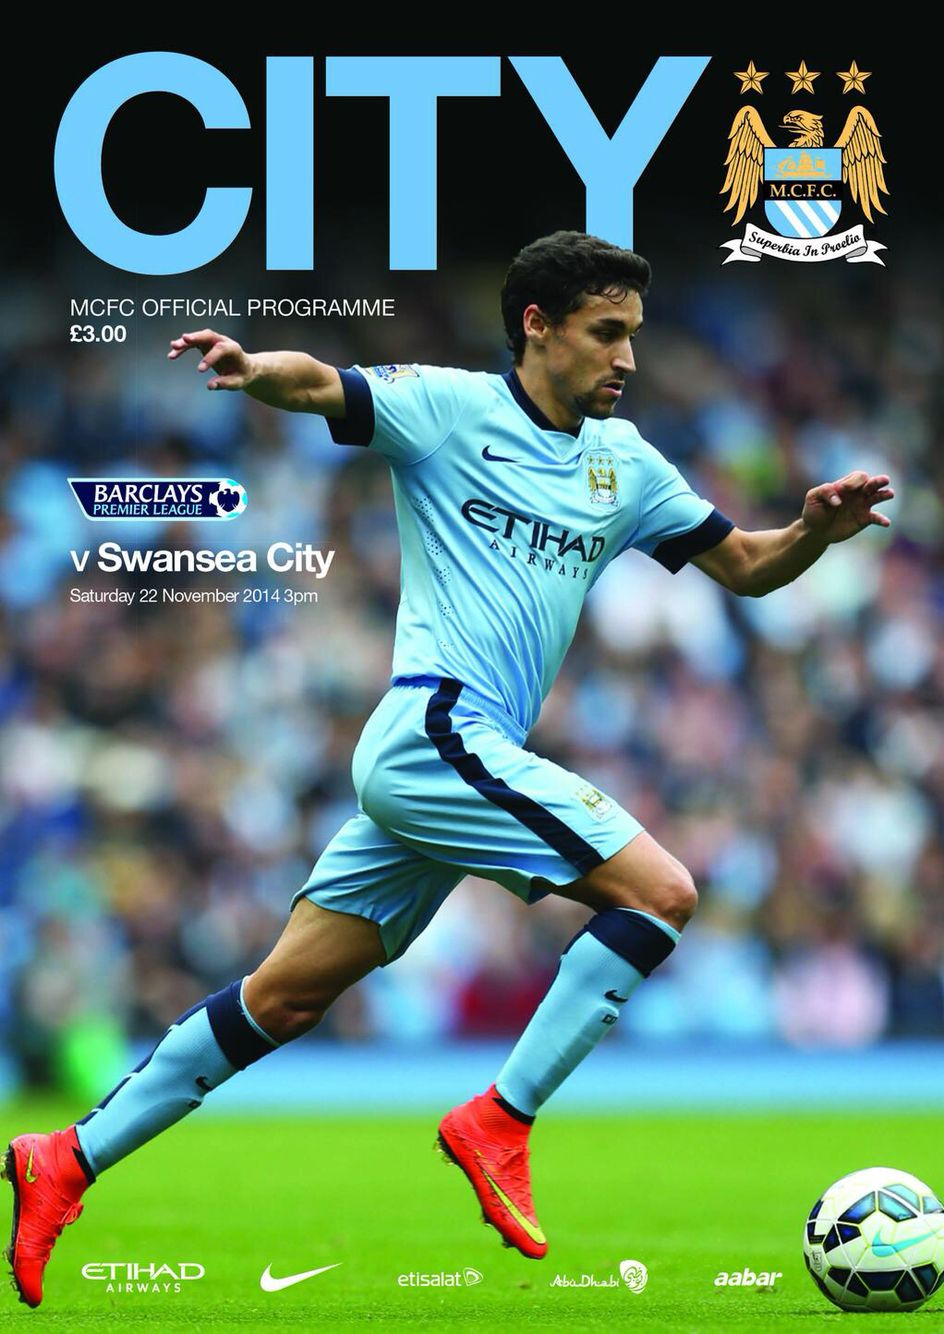 Manchester City v Swansea match programme front cover 22